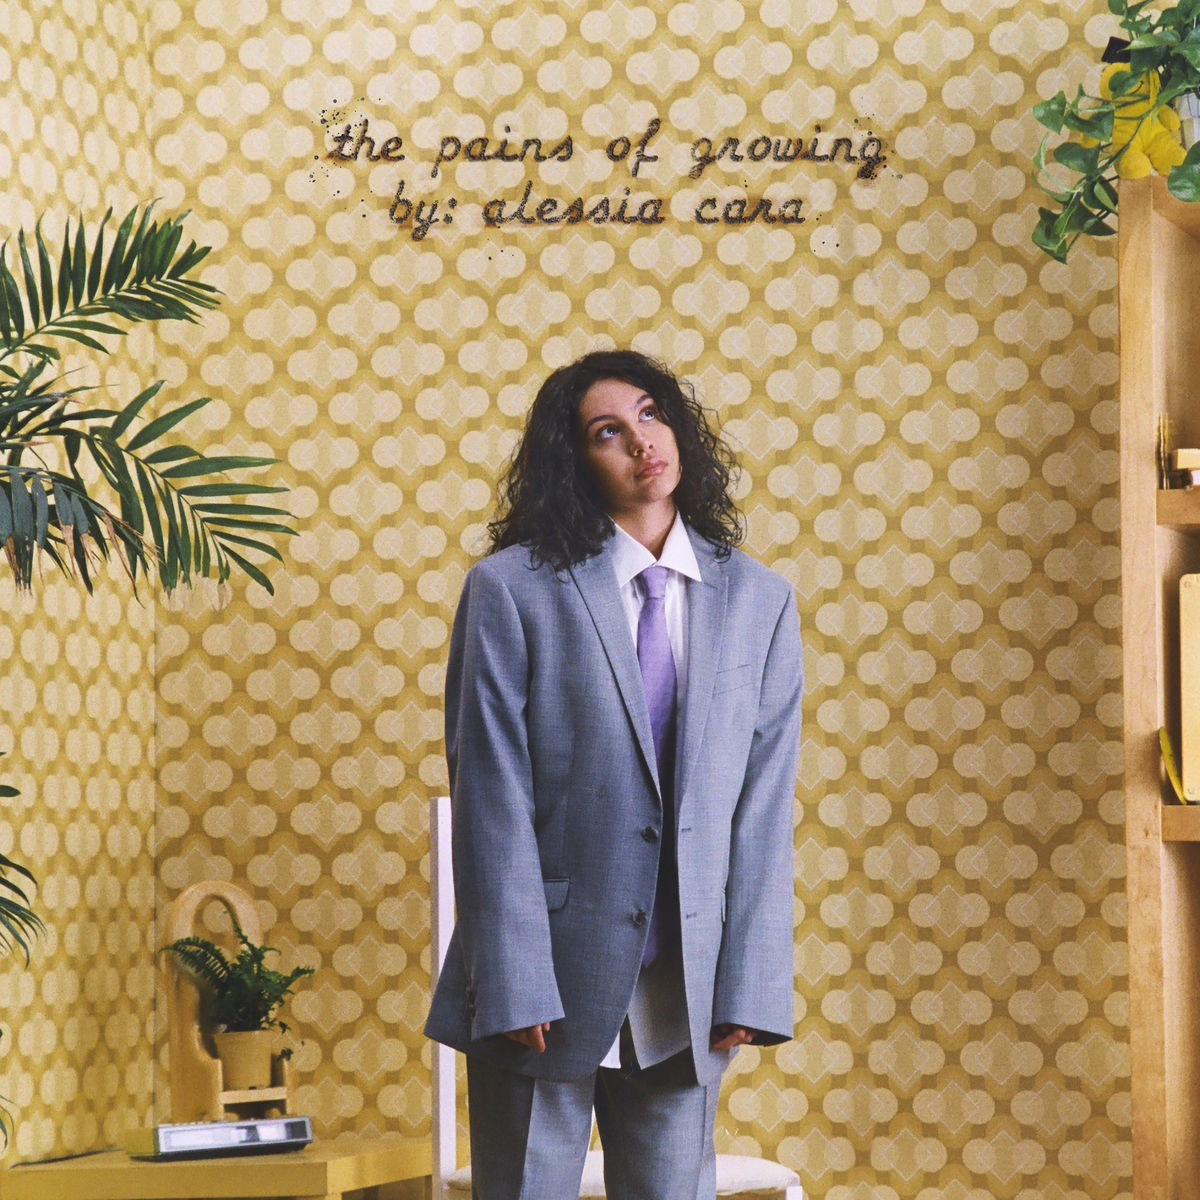 Alessia Cara - The Pains of Growing CD - 06025 7711218